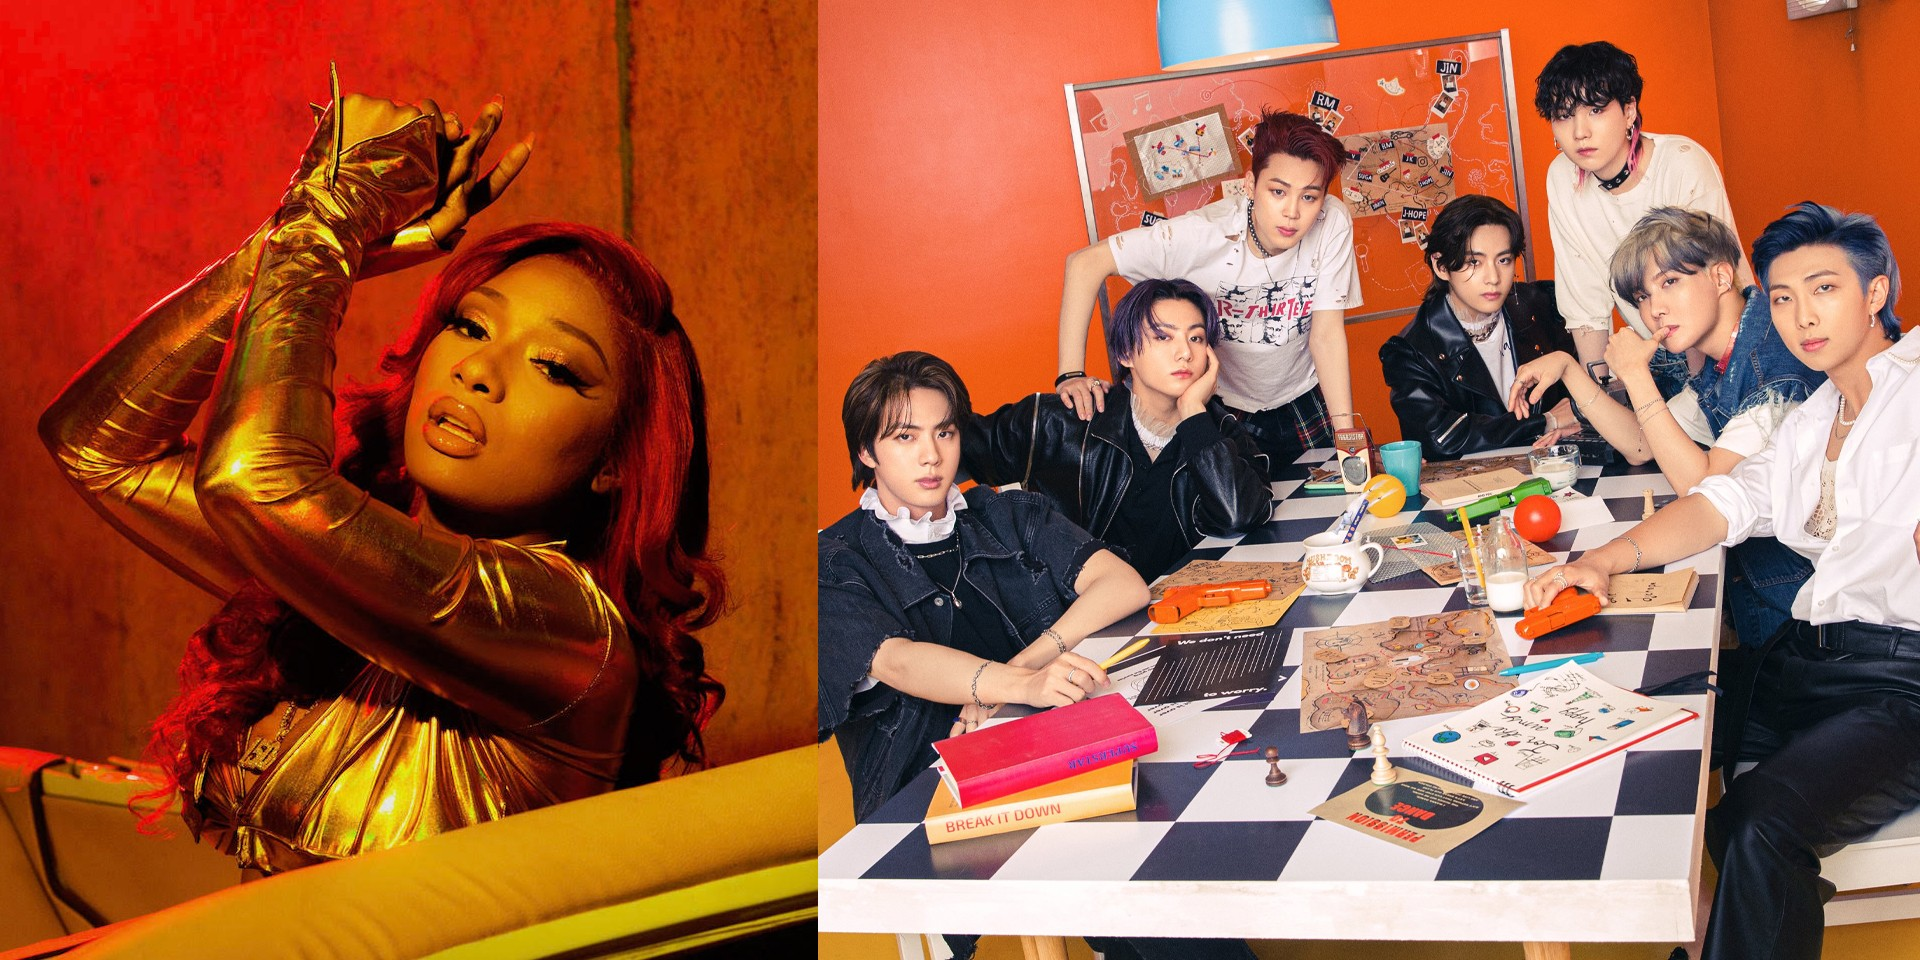 Megan Thee Stallion and BTS drop highly anticipated 'Butter' remix – listen